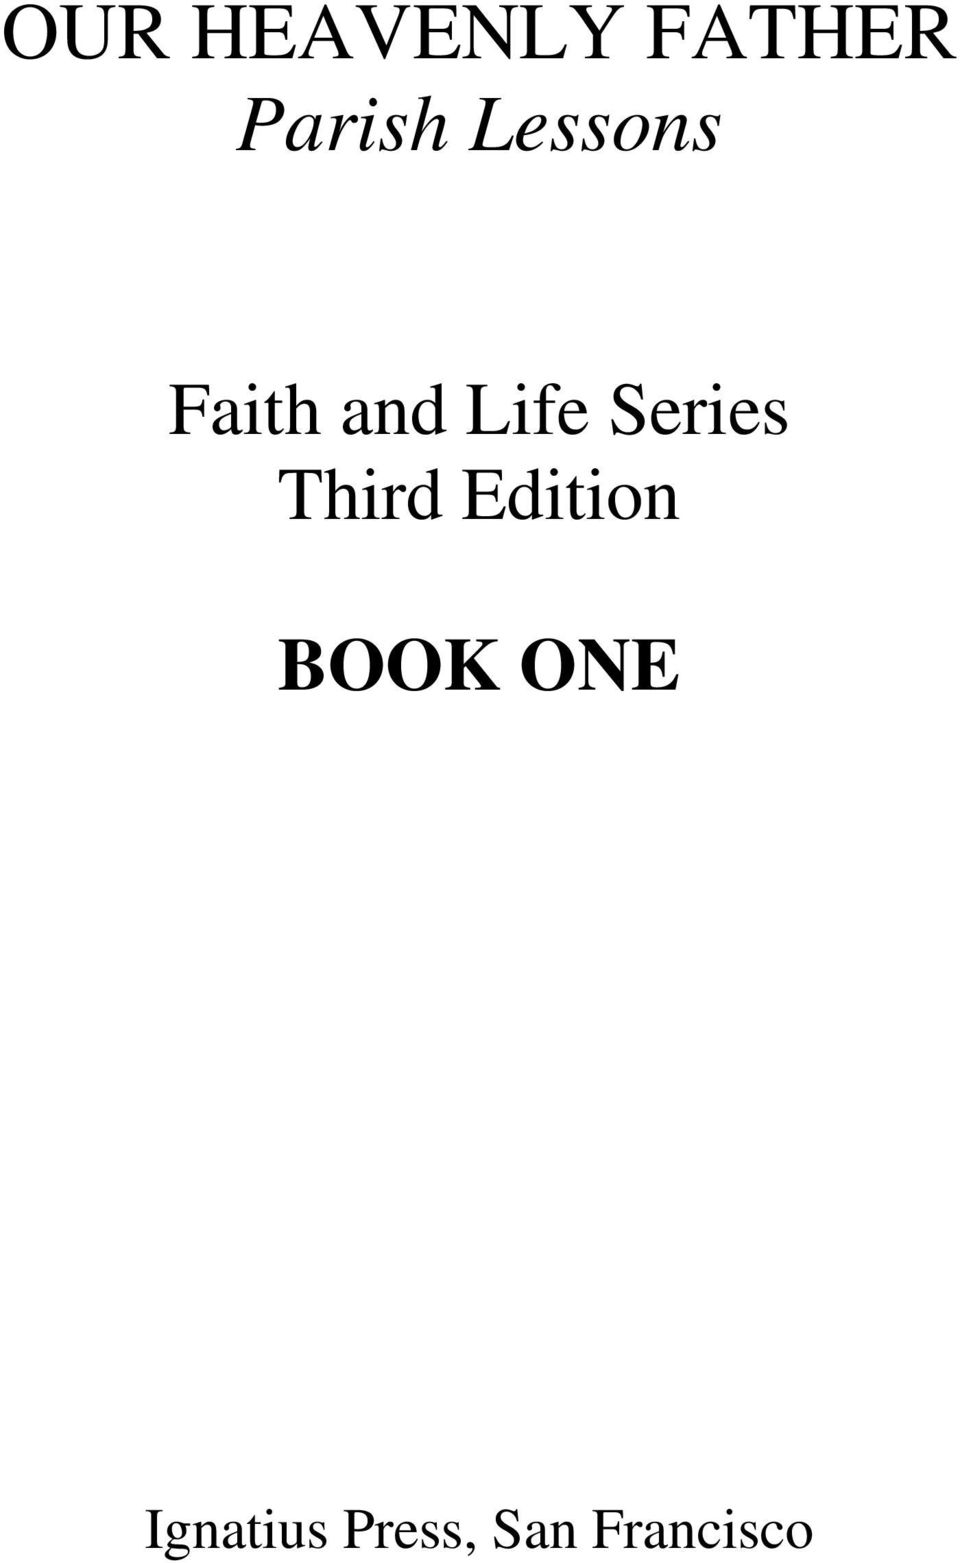 Series Third Edition BOOK